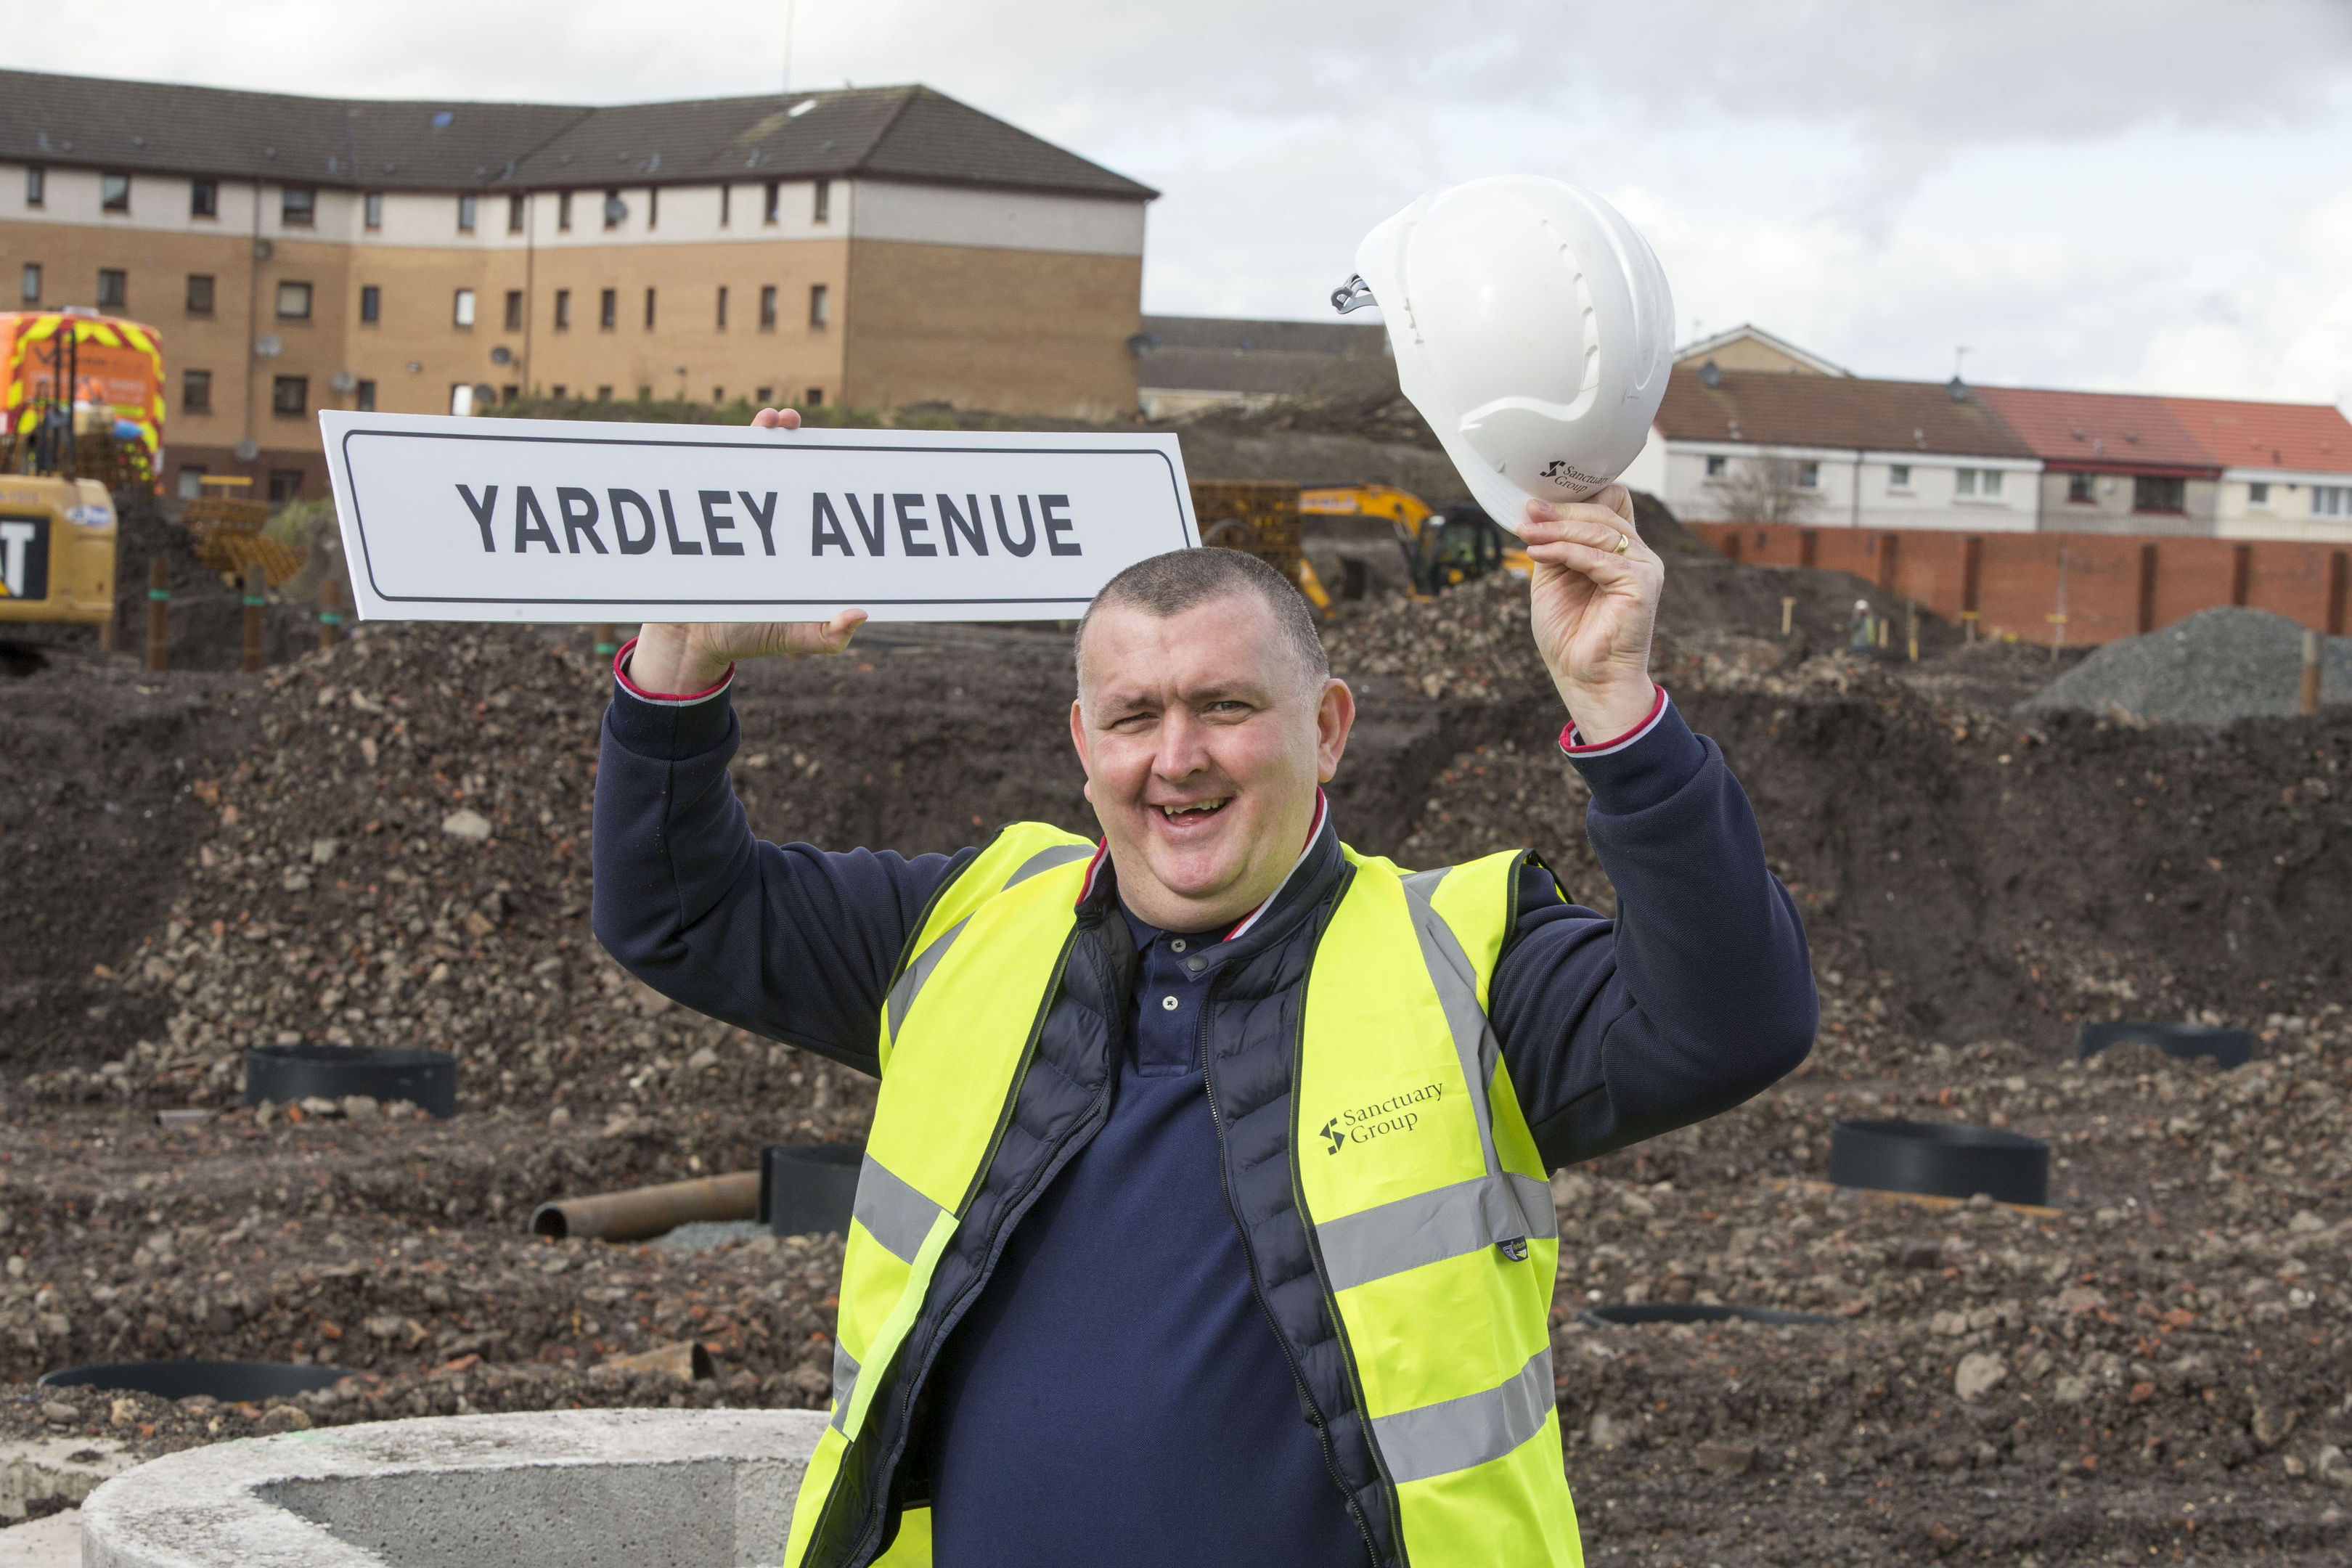 Mark Yardley holding a sign for a street which has been named in his honour (Jeff Holmes/PA Wire)